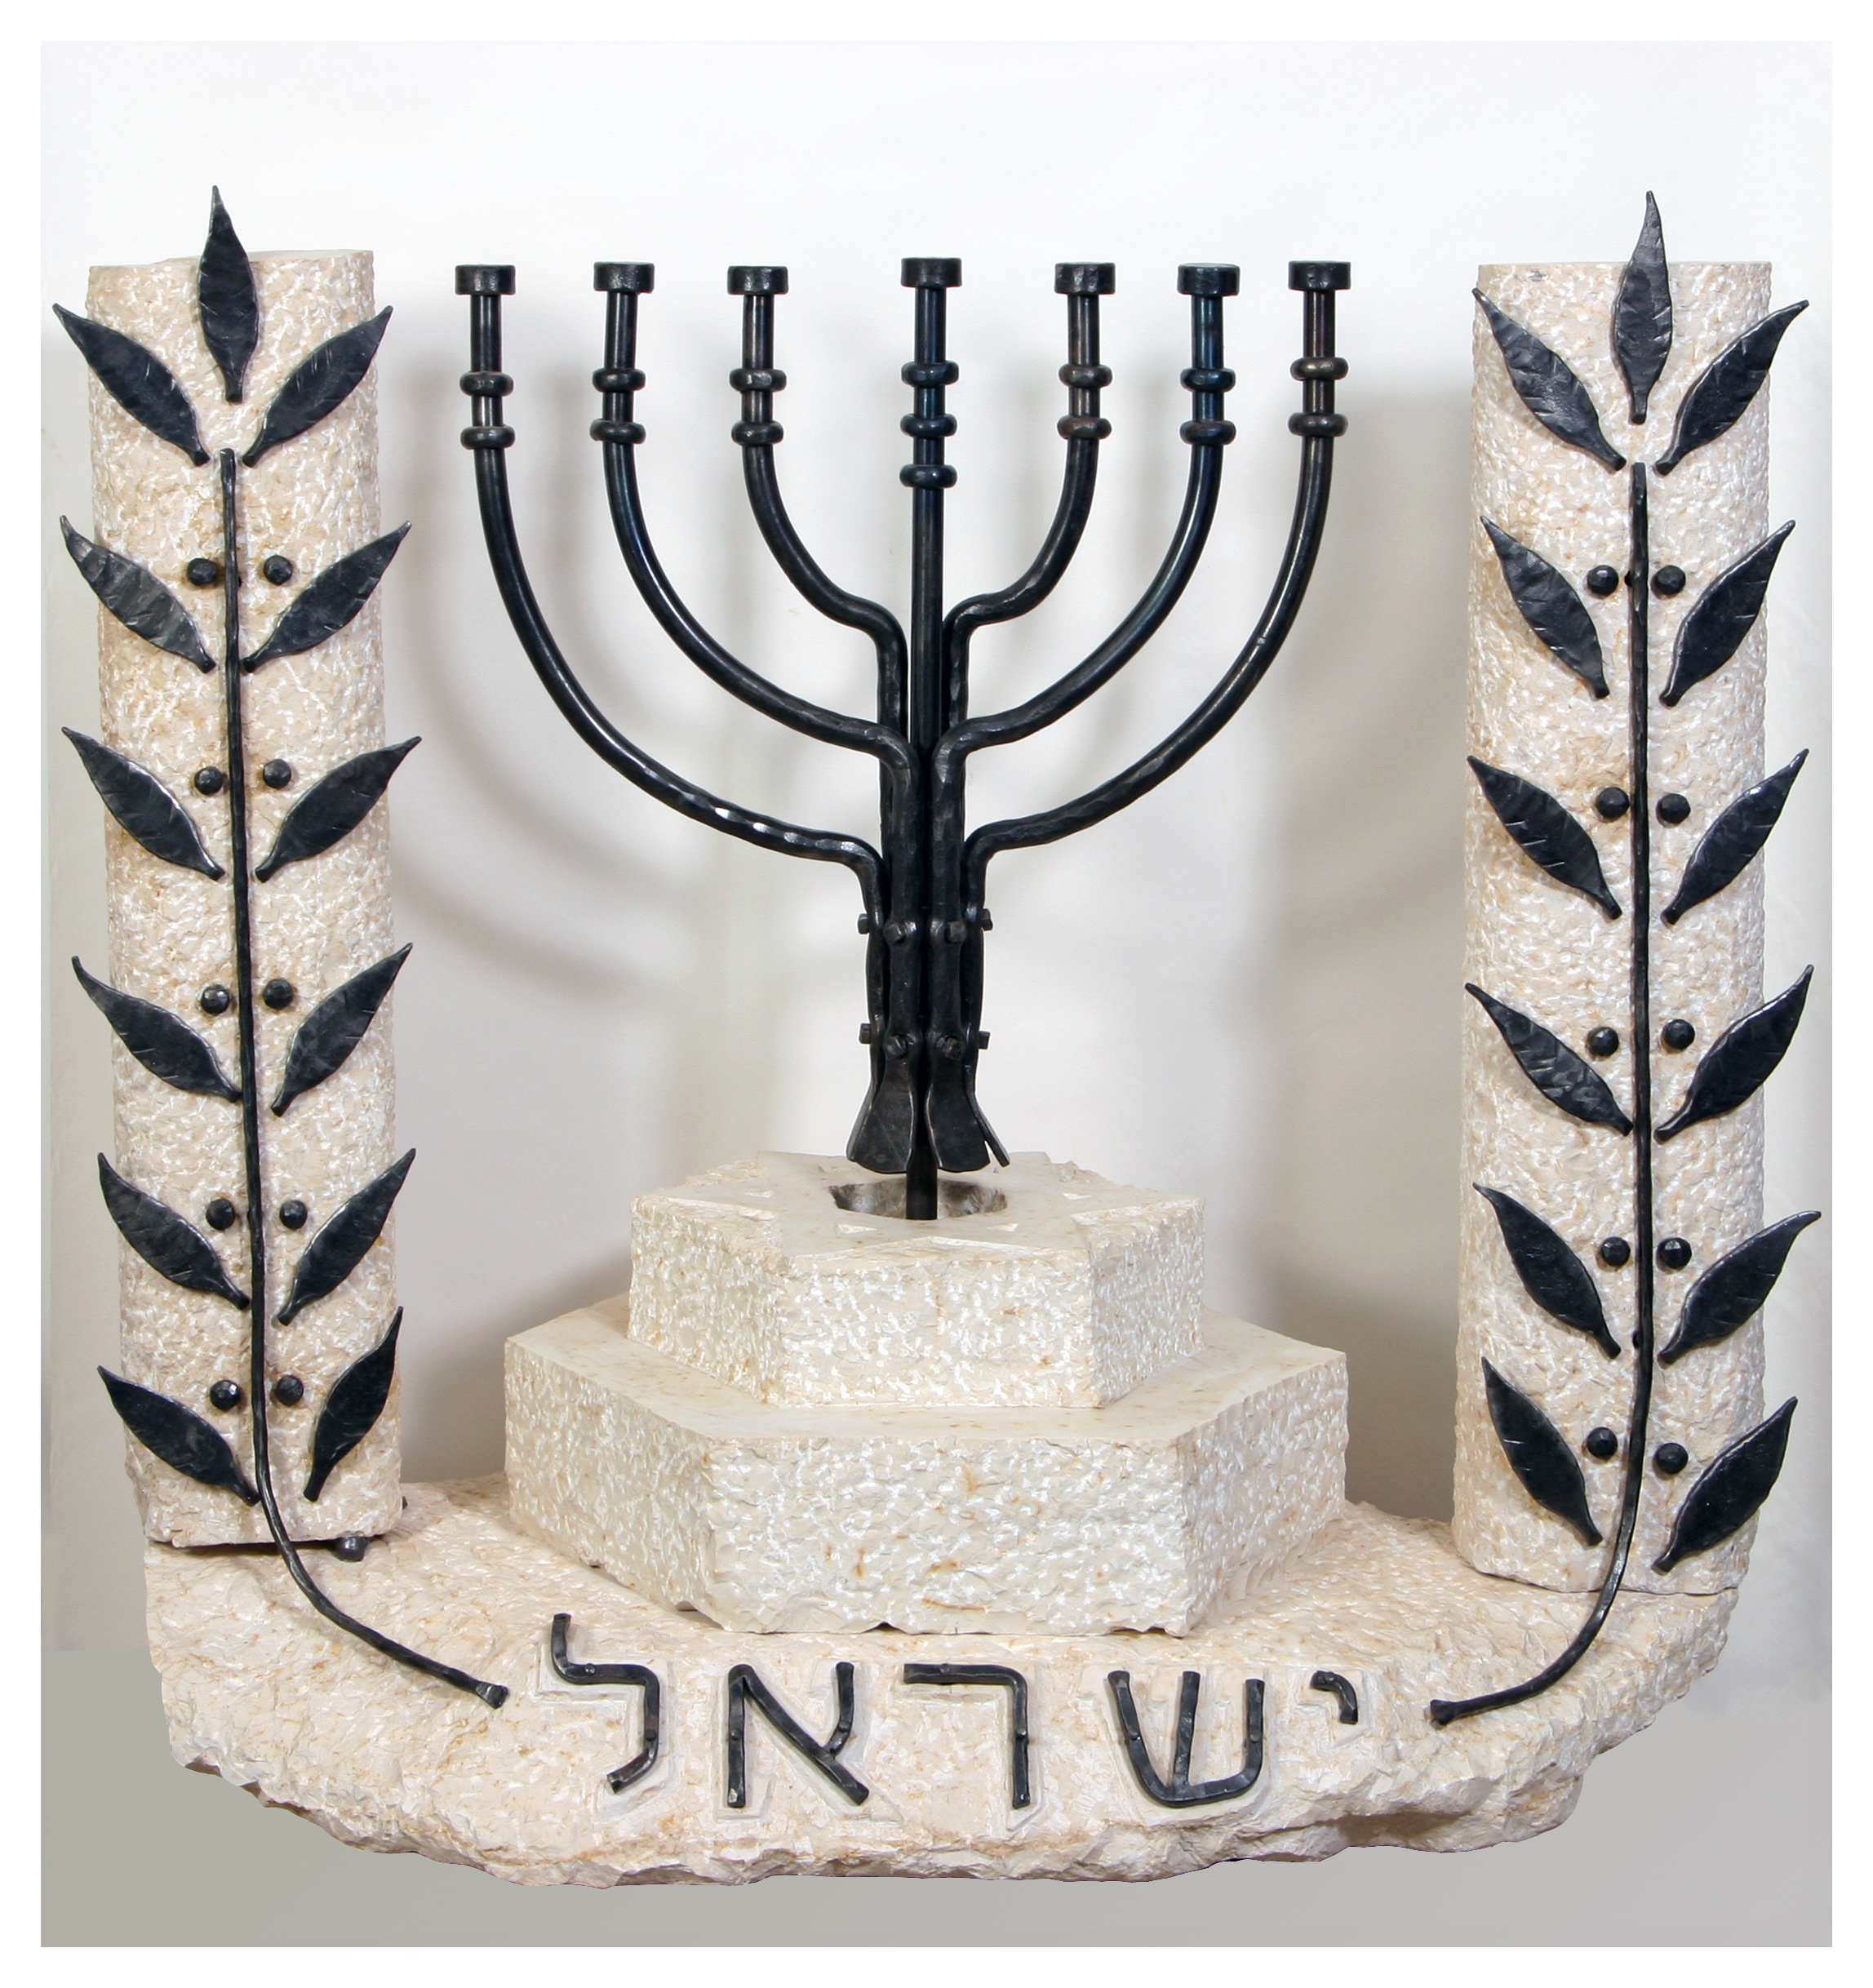 'Emblem of the State of Israel' – Large Menorah of Iron and Jerusalem Stone